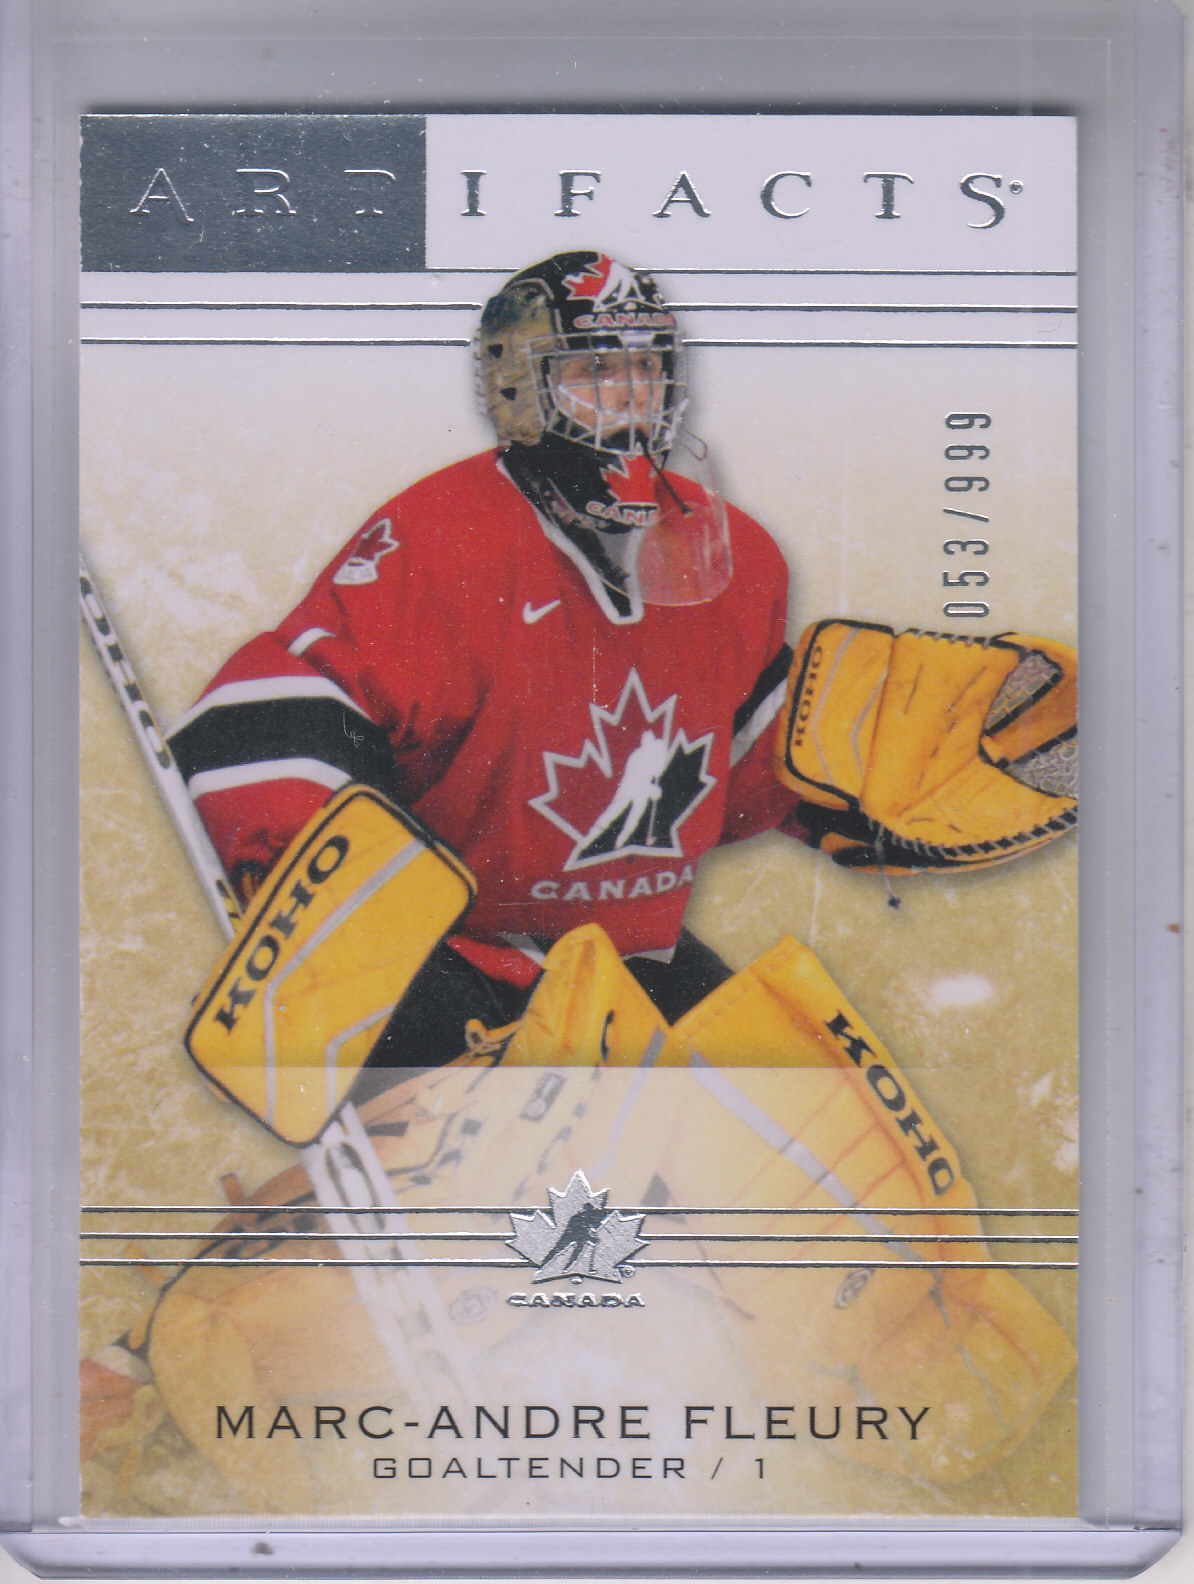 2014-15 Artifacts #102 Marc-Andre Fleury G